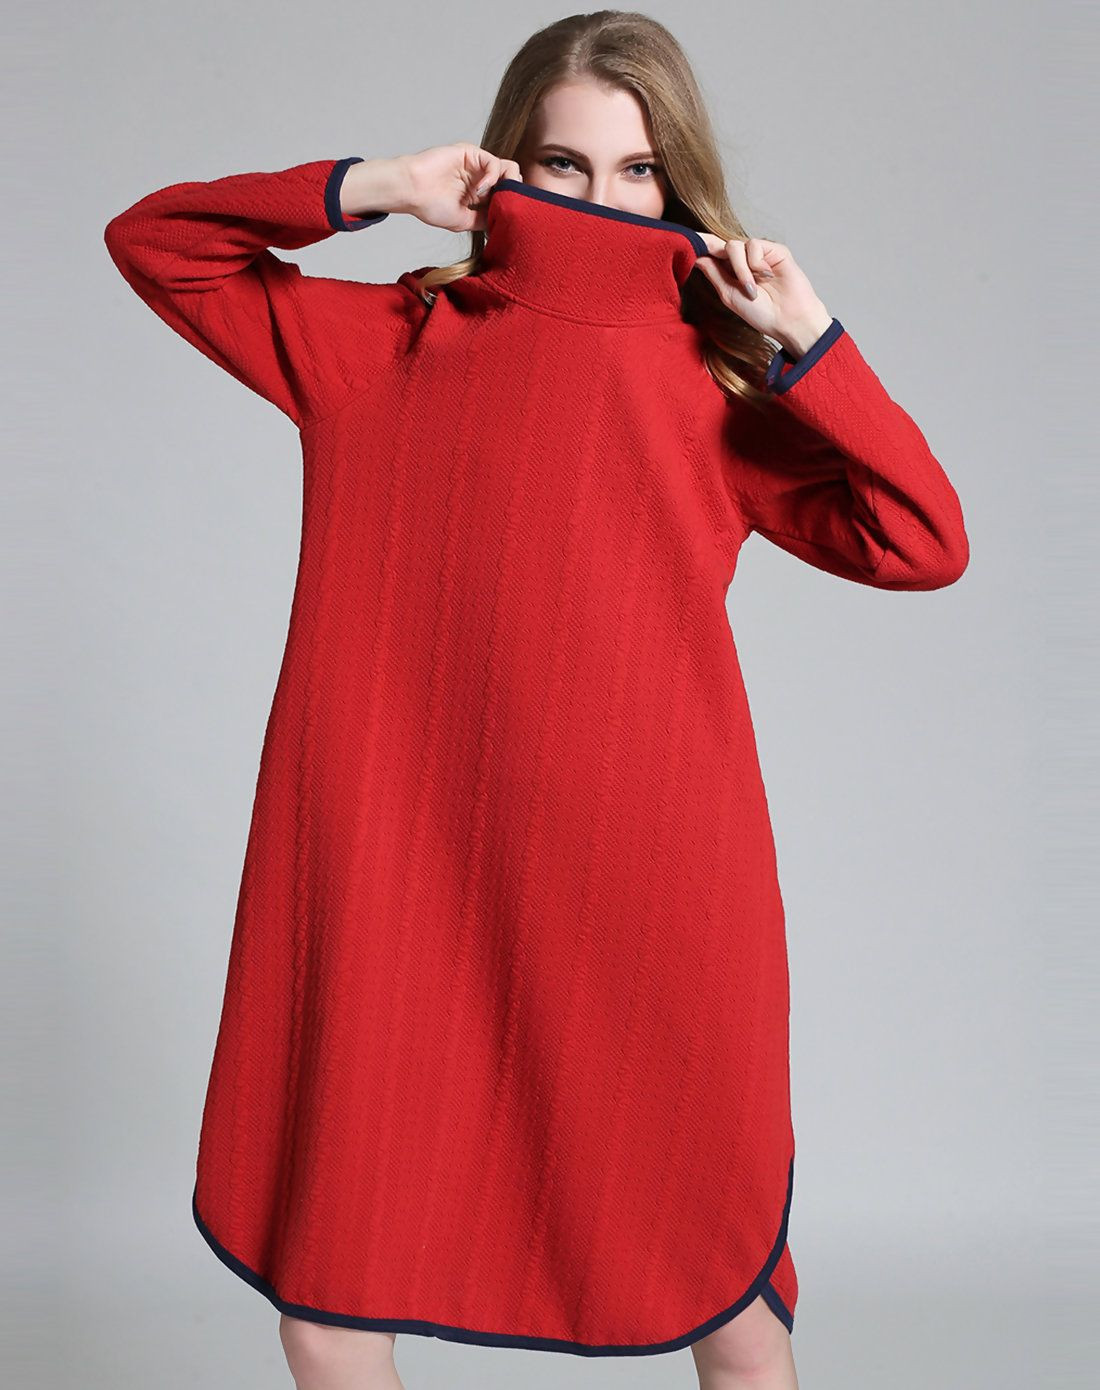 Adorewe vipme aline dresses jianruyi red long sleeve embossed